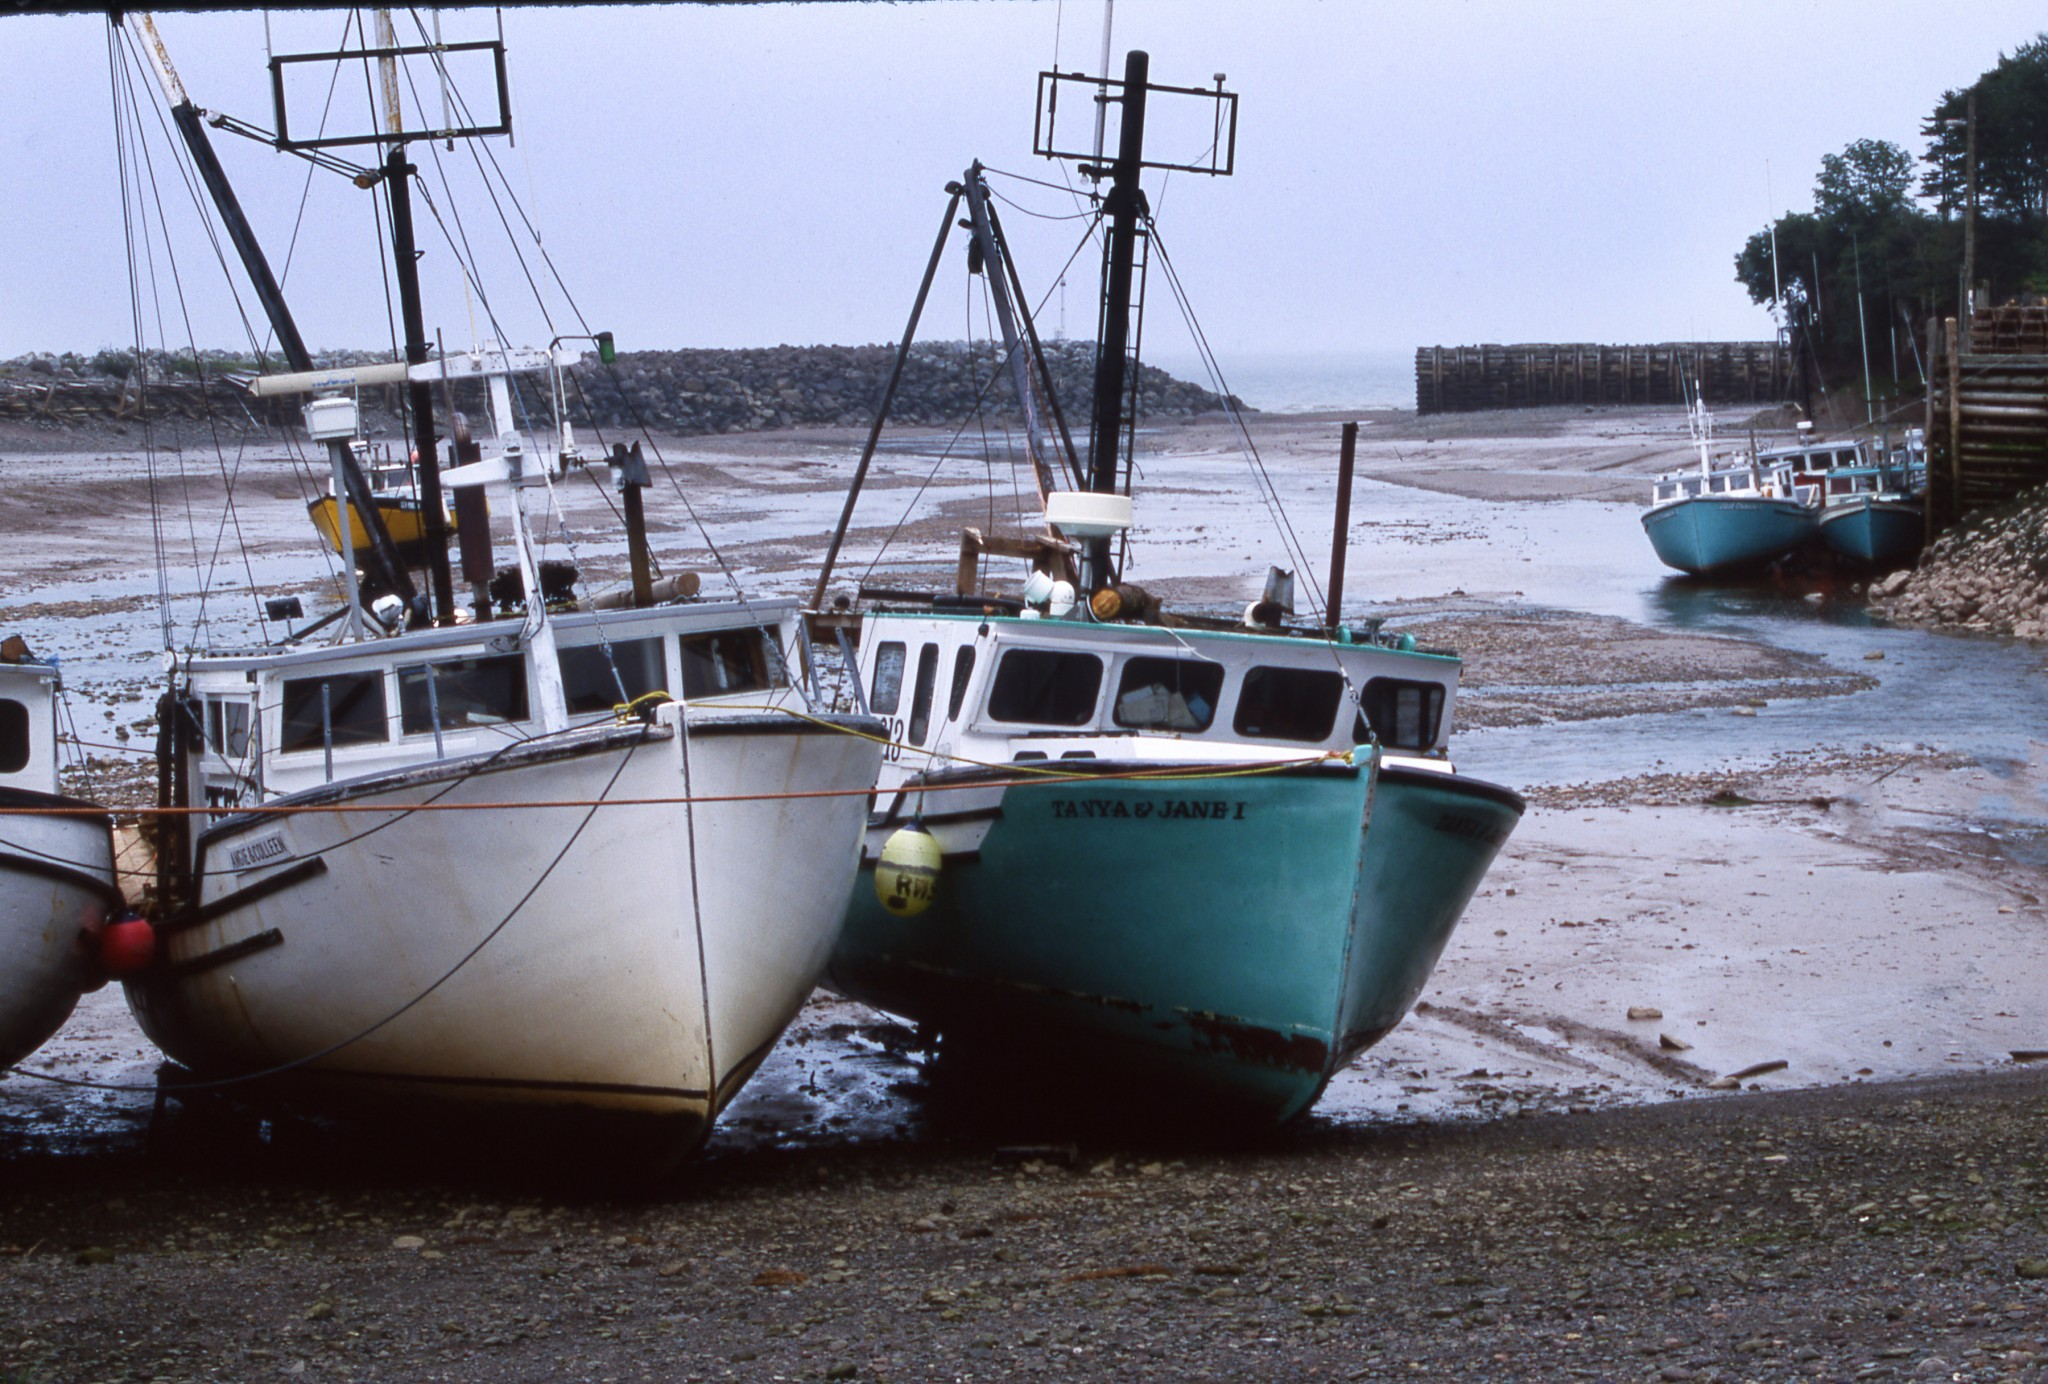 St. Martins is a picturesque New Brunswick fishing village on the Bay of Fundy that faces two low tides daily that leave their boats sitting on the bottom of their small harbor. (Photo by Art Weber)